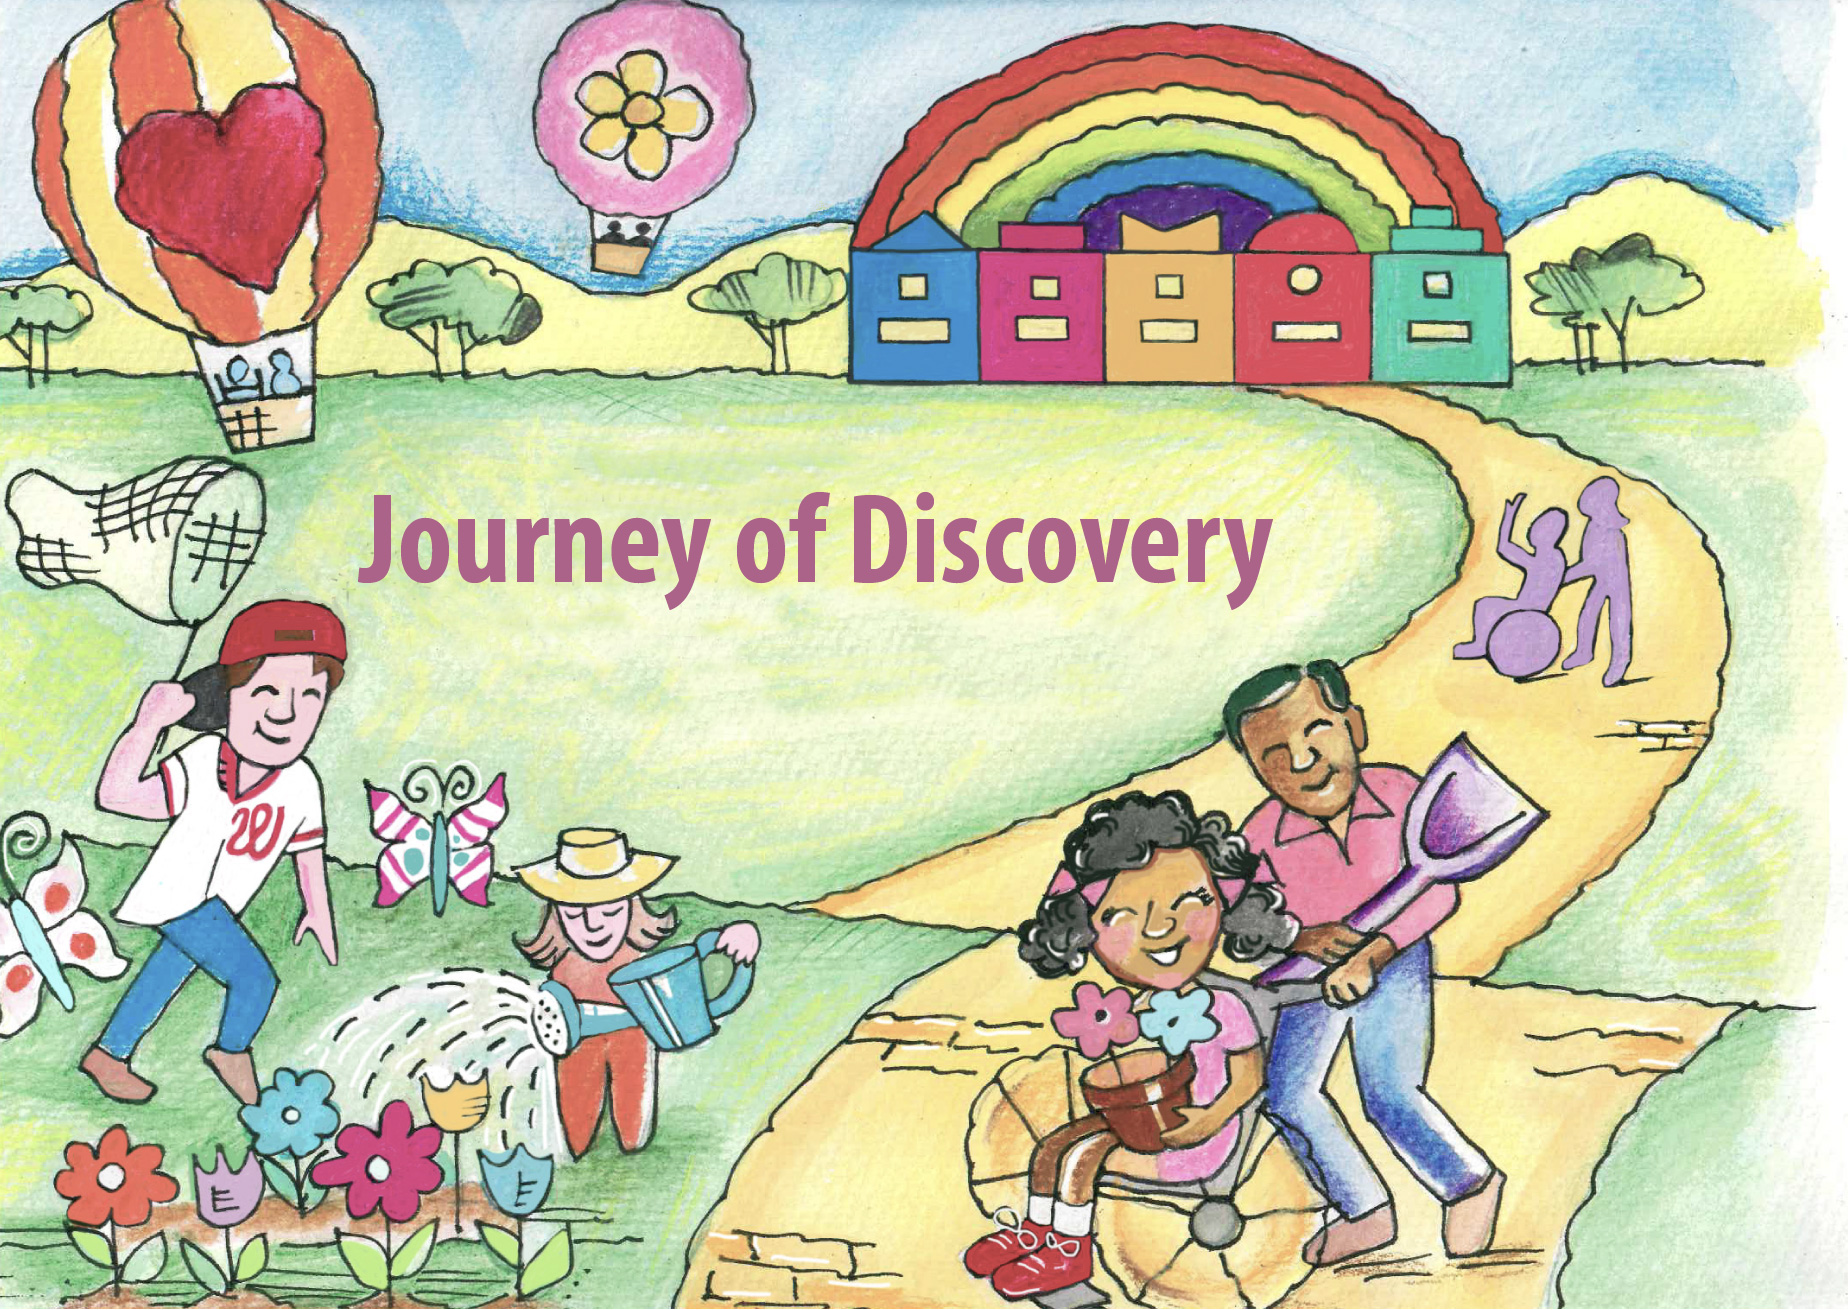 journey of discovery illustration